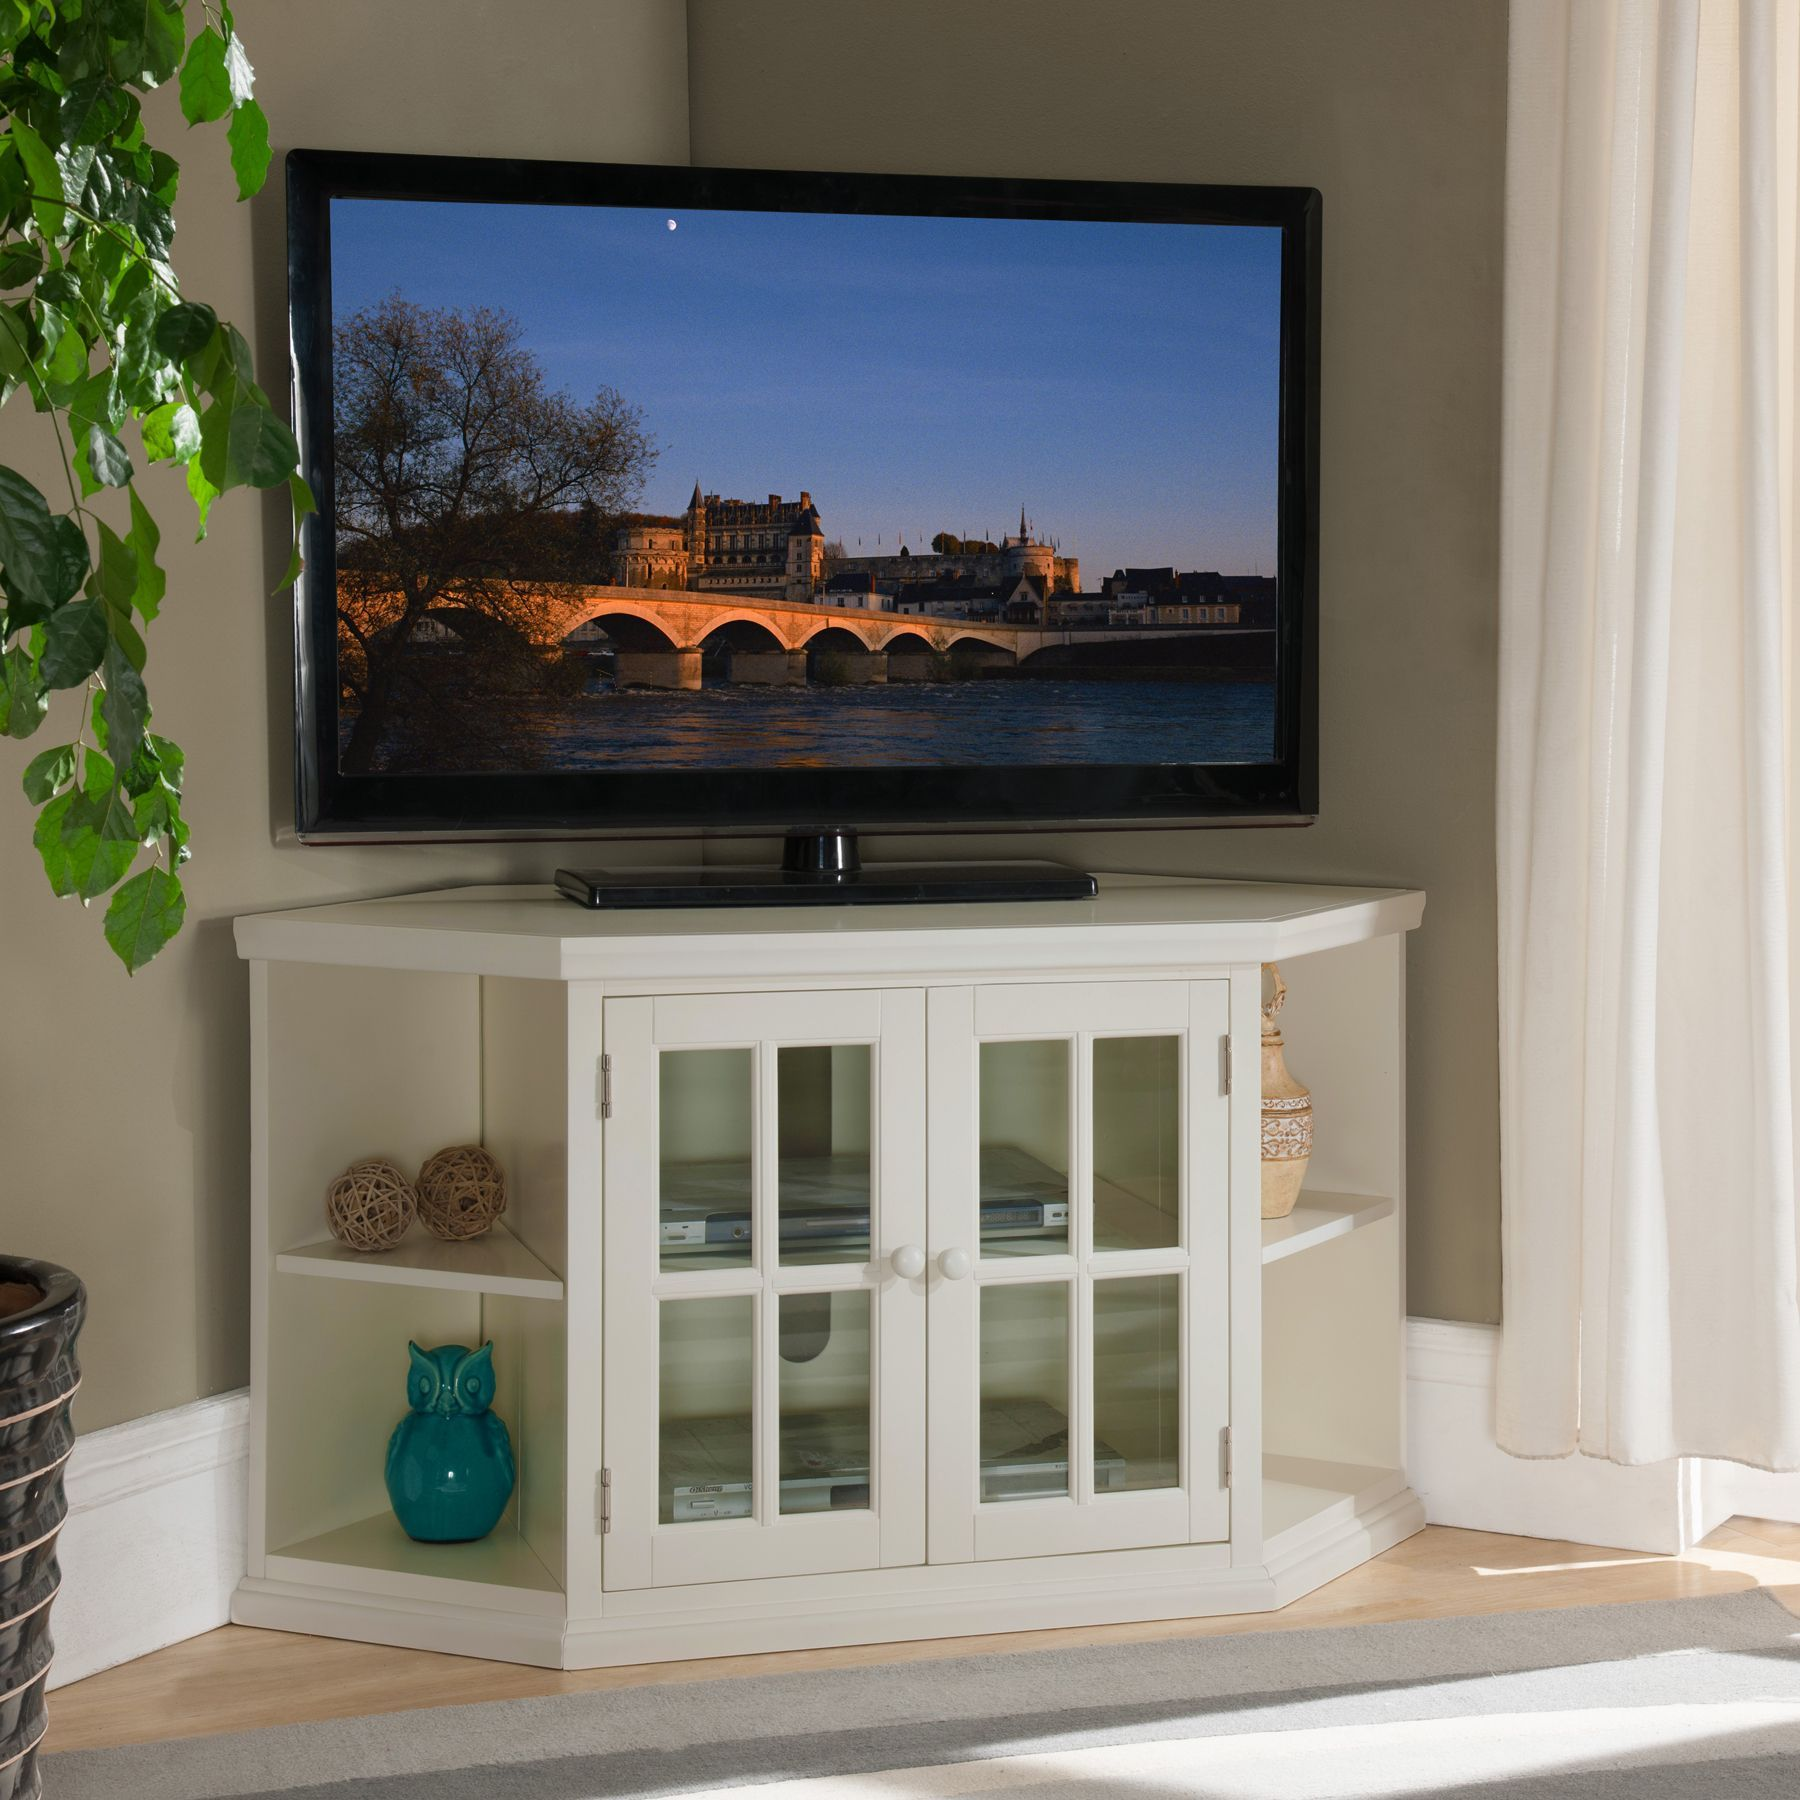 White 46-inch Corner TV Stand with Bookcases | Corner tv stands ...